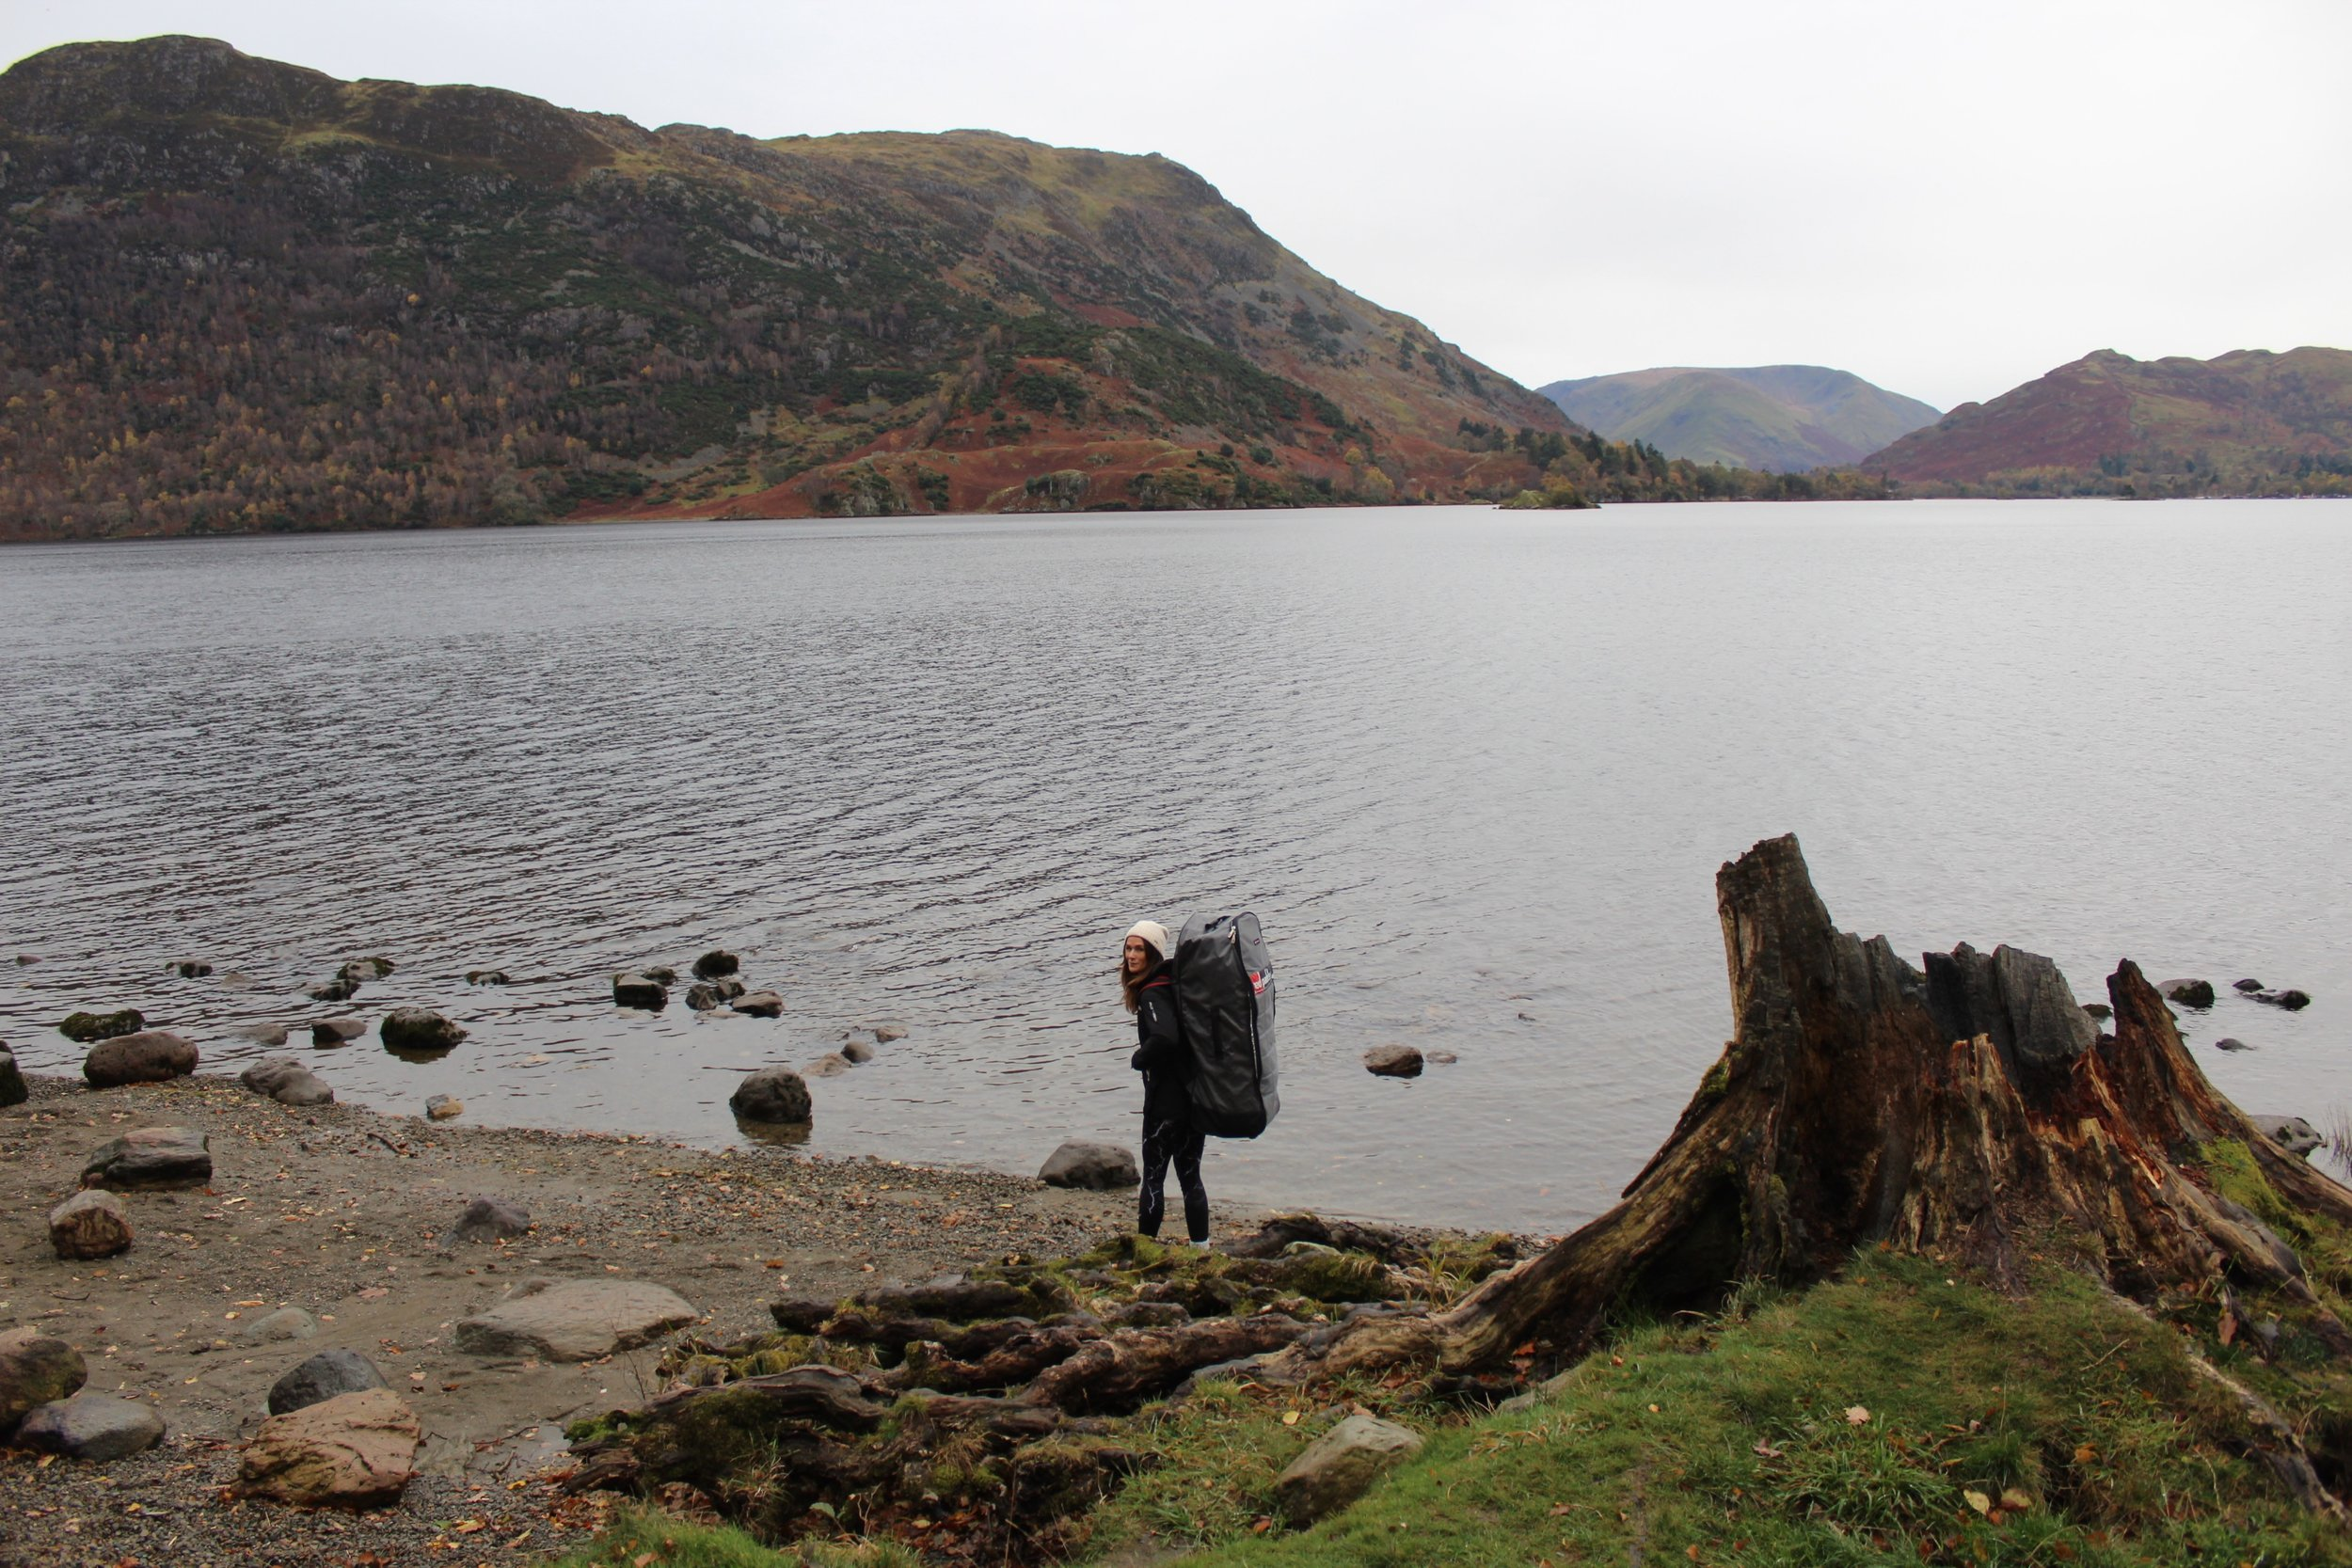 Hiking down to Ullswater with my paddle board (can you see the little island in the distance?)